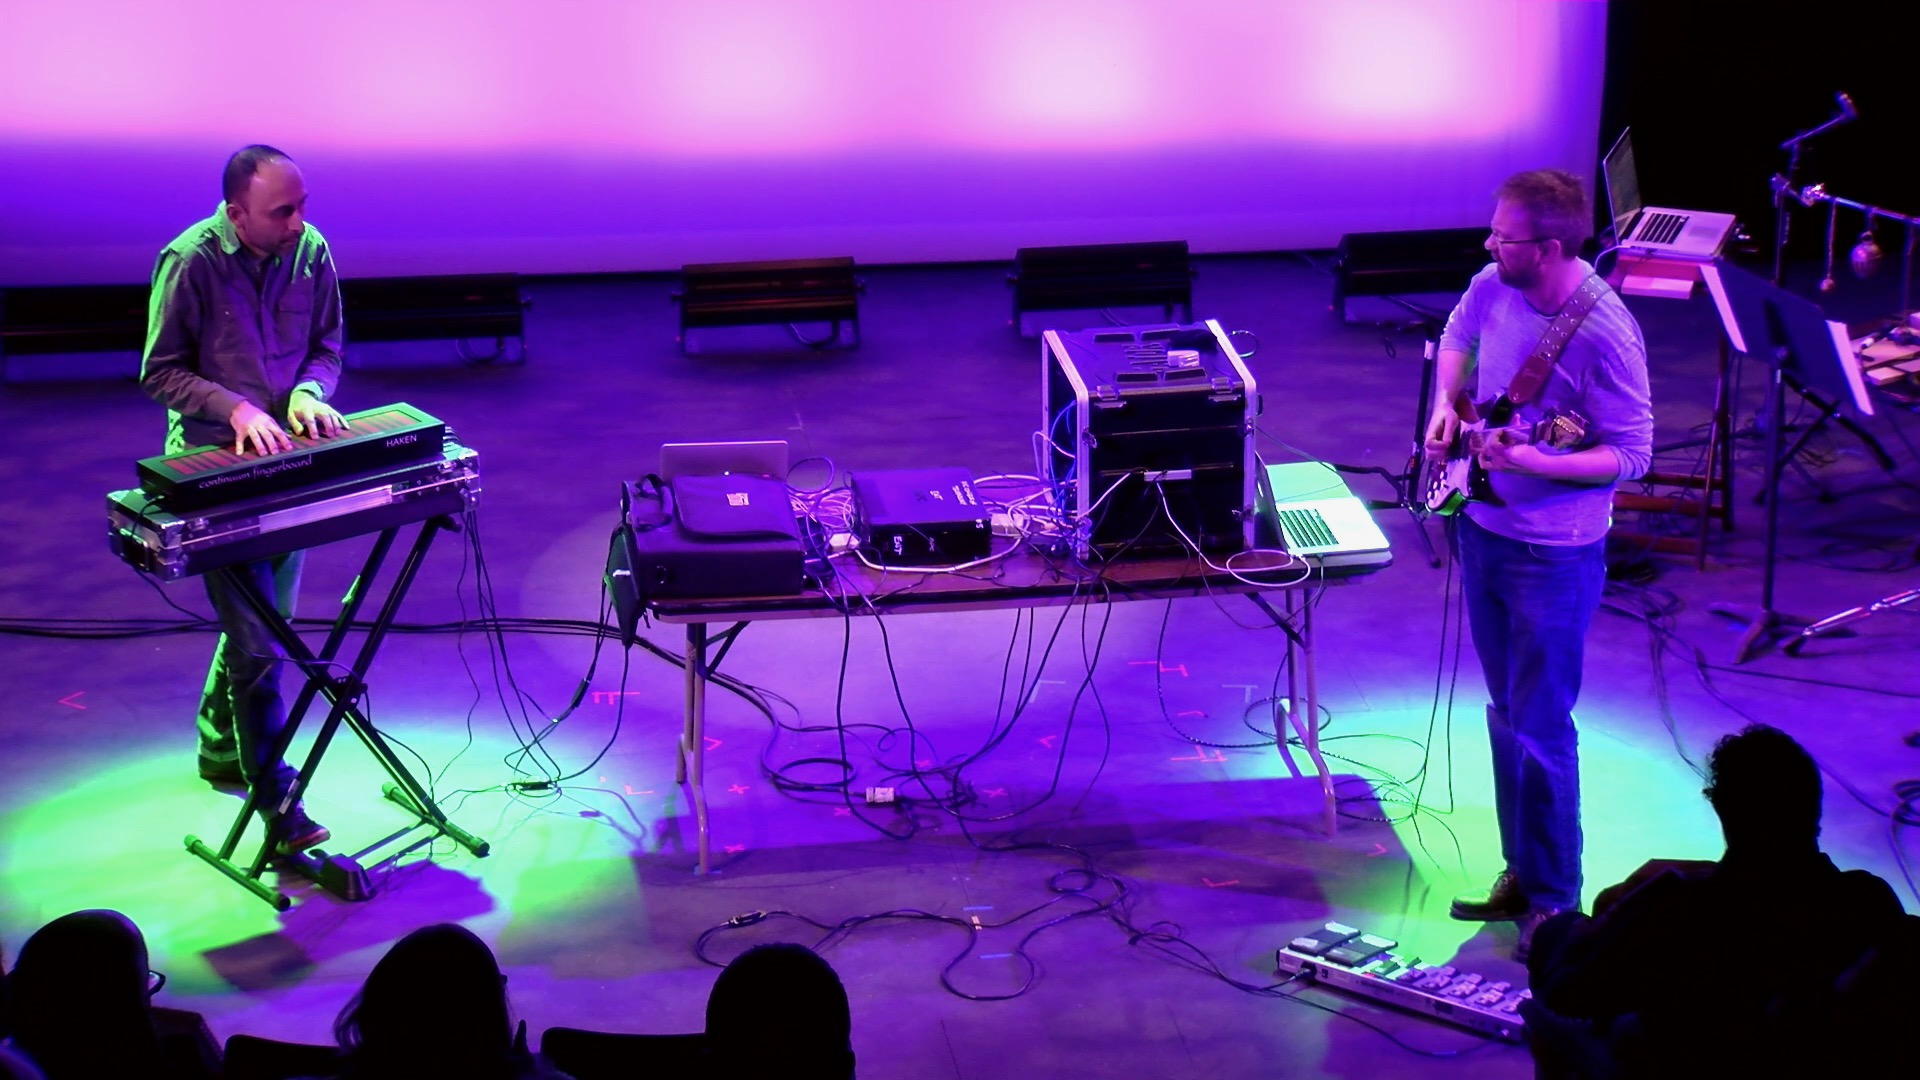 Adam performing with Arto Artinian (on Haken Continuum Fingerboard) at the 2016 New York City Electroacoustic Improvisation Summit